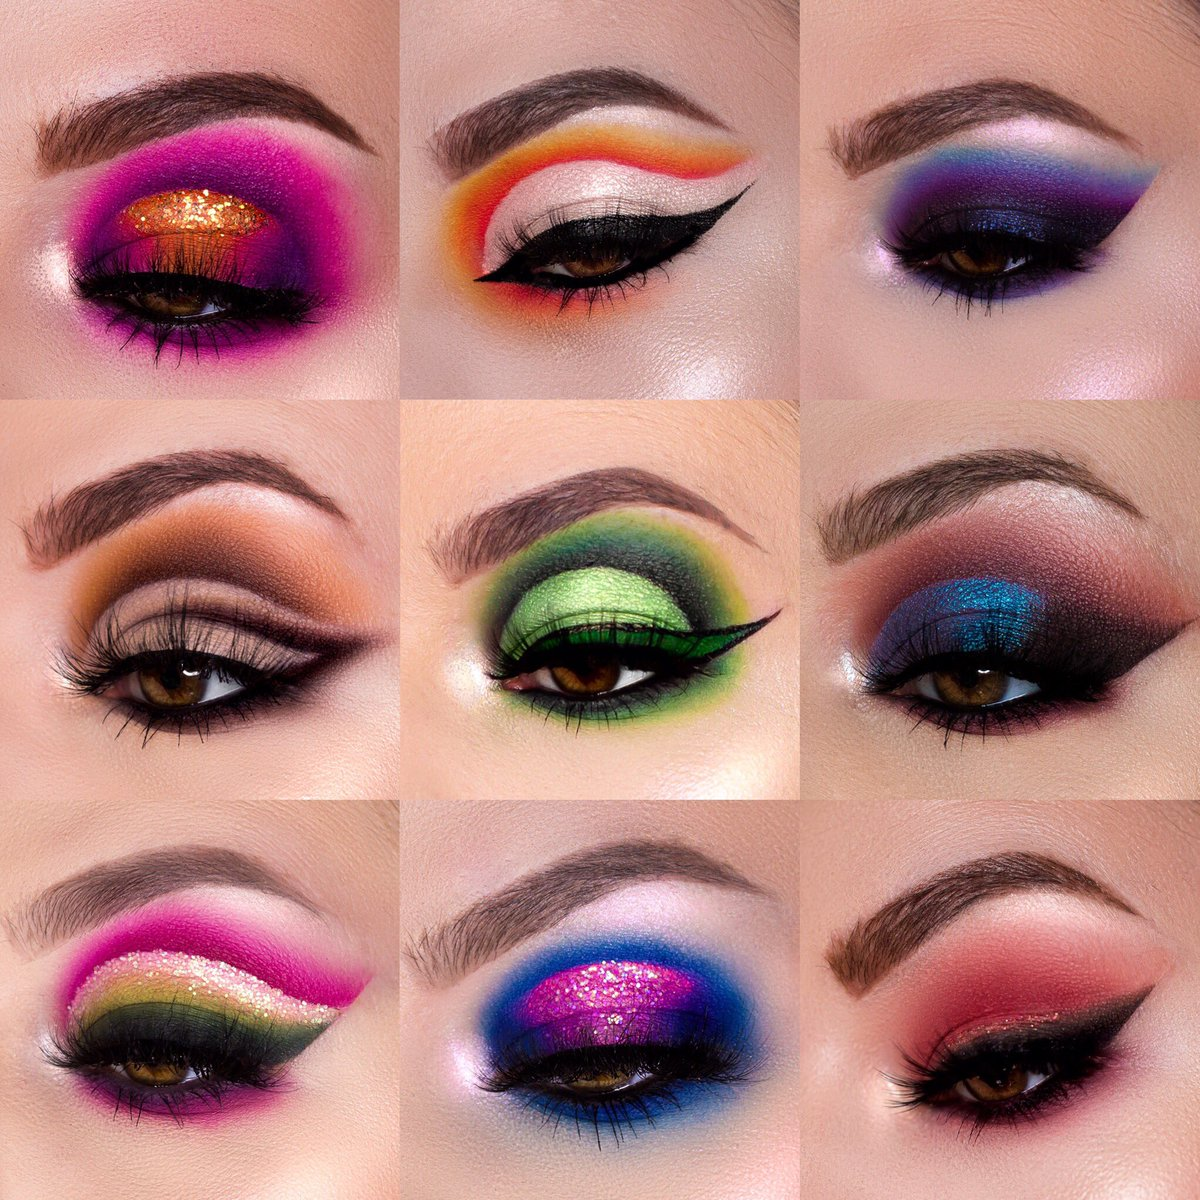 Which is your favorite?? Really proud of all of these! Palettes used: @MorpheBrushes X @jamescharles Palette @MannyMua733 #LunarBeauty Greek Goddess Palette  @ColouredRaine Vivid Pigments Palette @ABHcosmetics Sultry Palette @litcosmetics Glitters  http://Instagram.com/kaitkmua